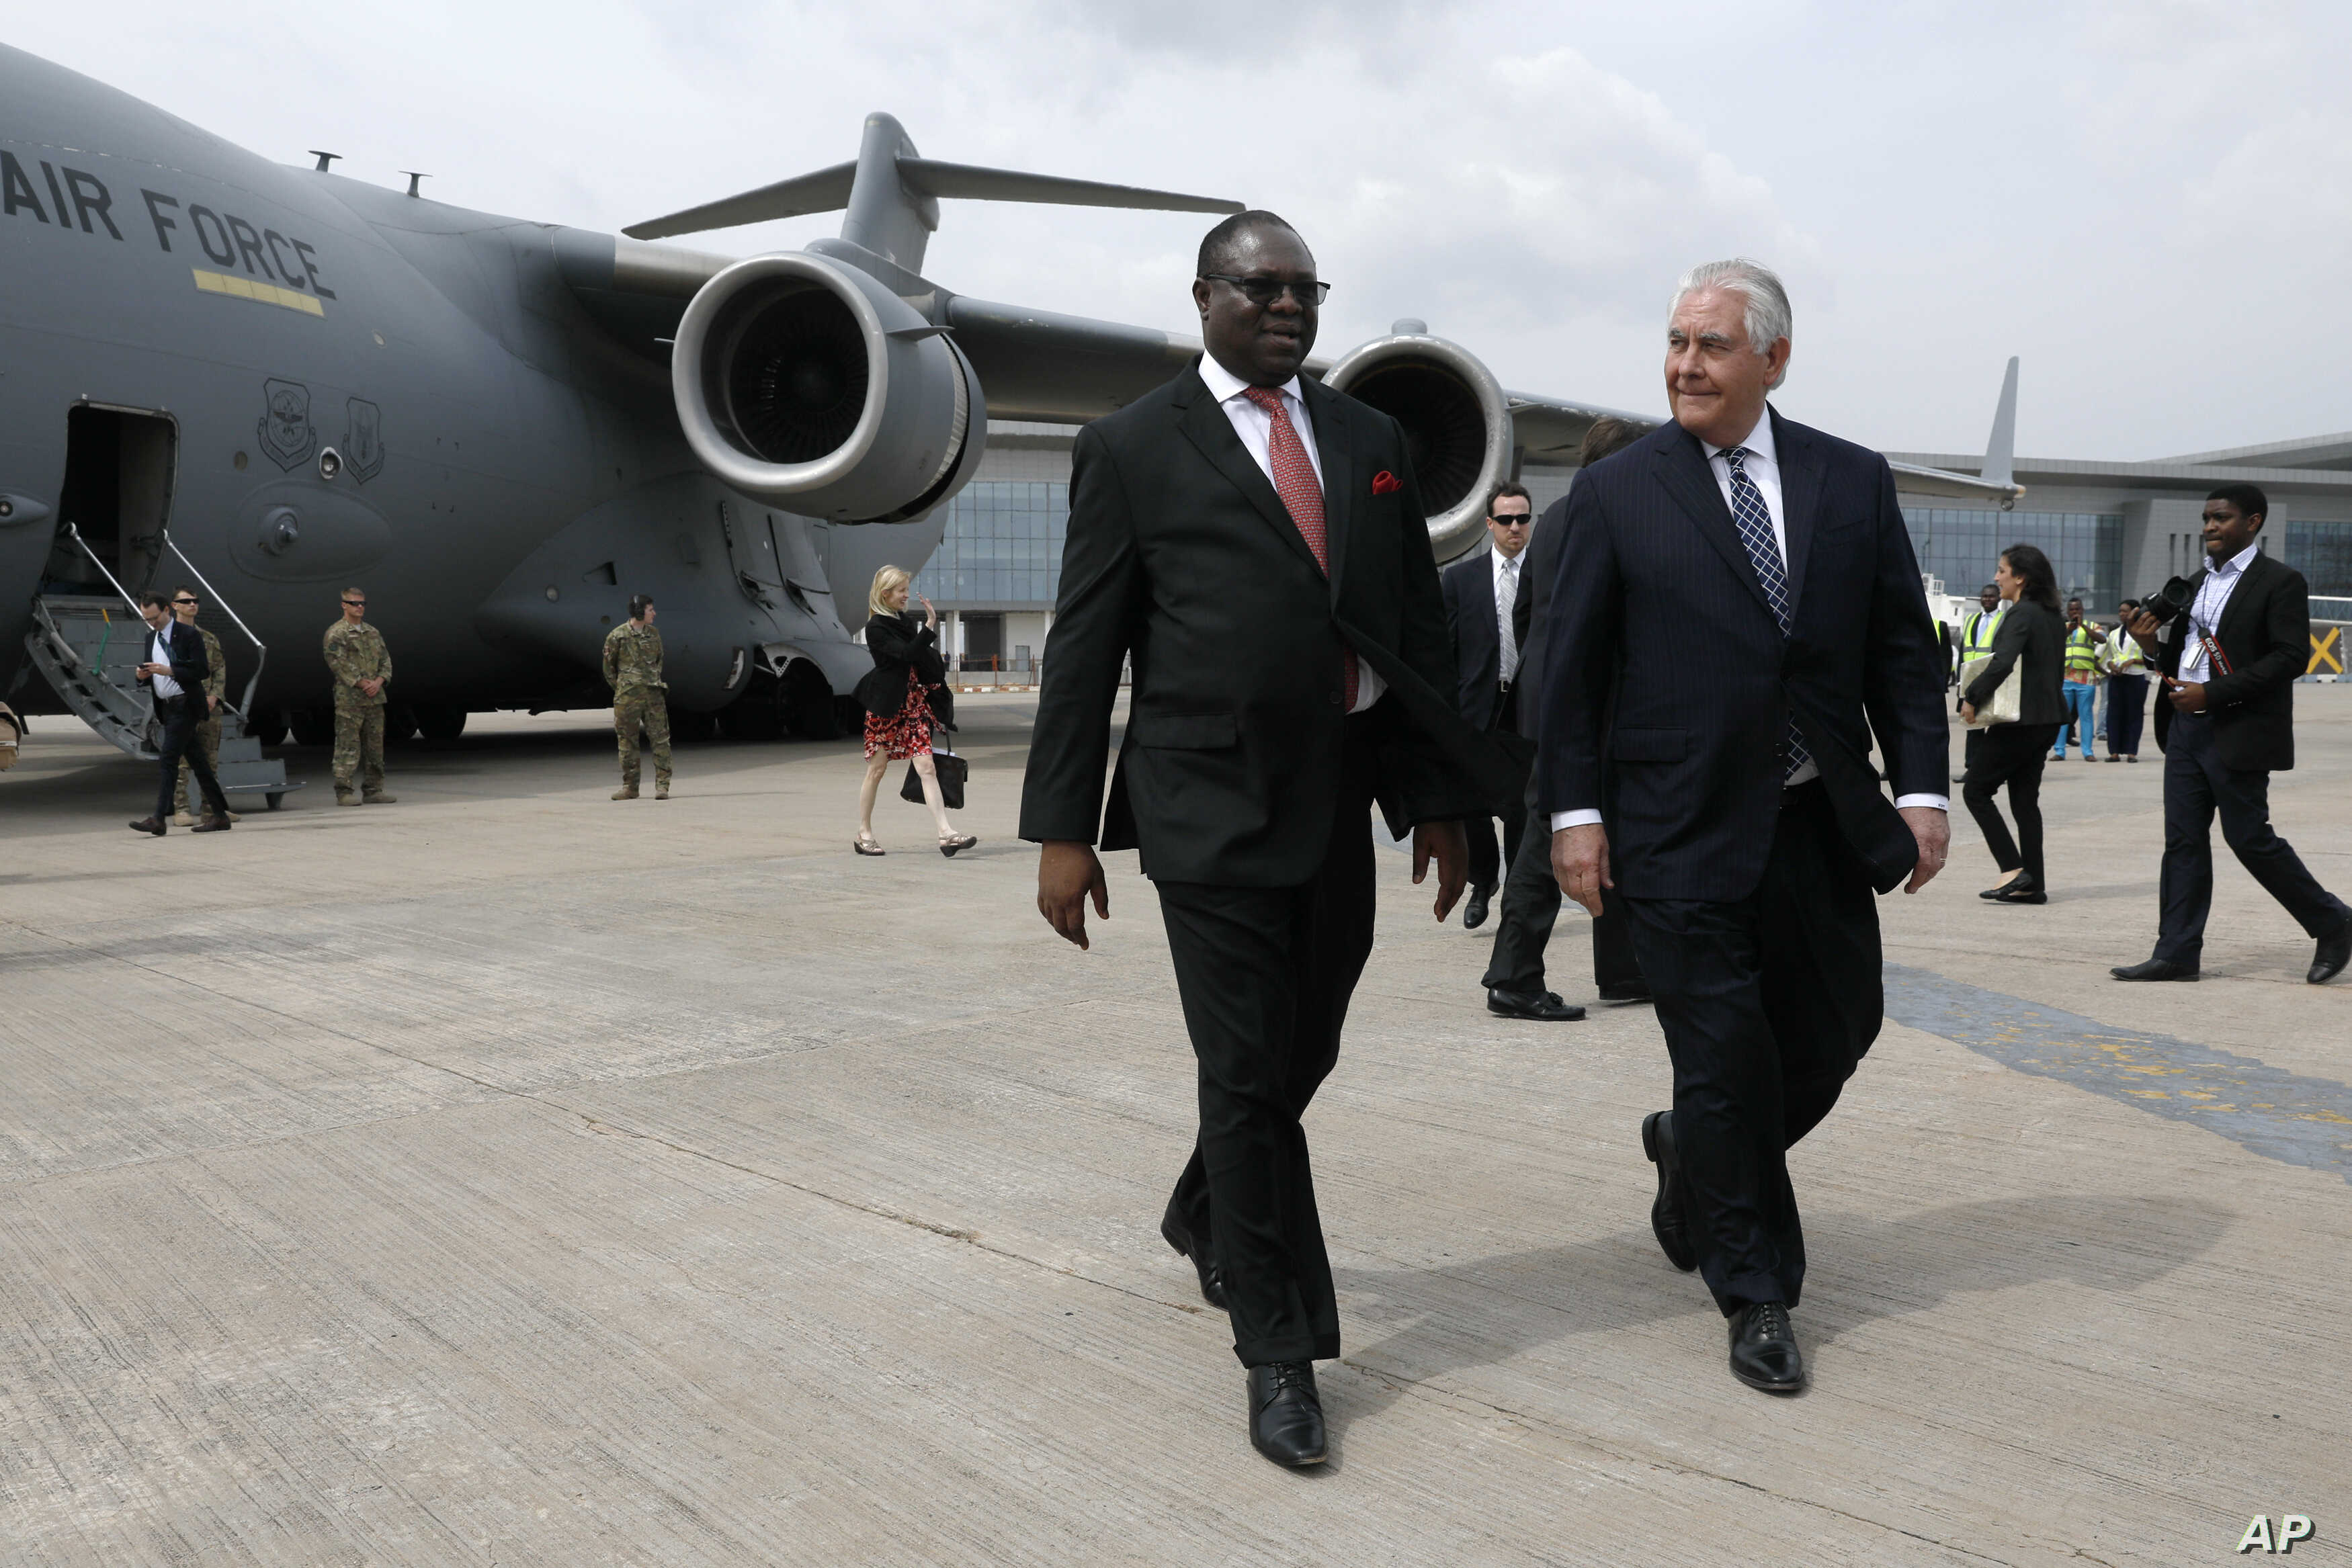 Nigeria's Ministry of Foreign Affairs, the Permanent Secretary Olukunle Bamgbose walks with U.S. Secretary of State Rex Tillerson as he arrives in Abuja, Nigeria, March 12, 2018.